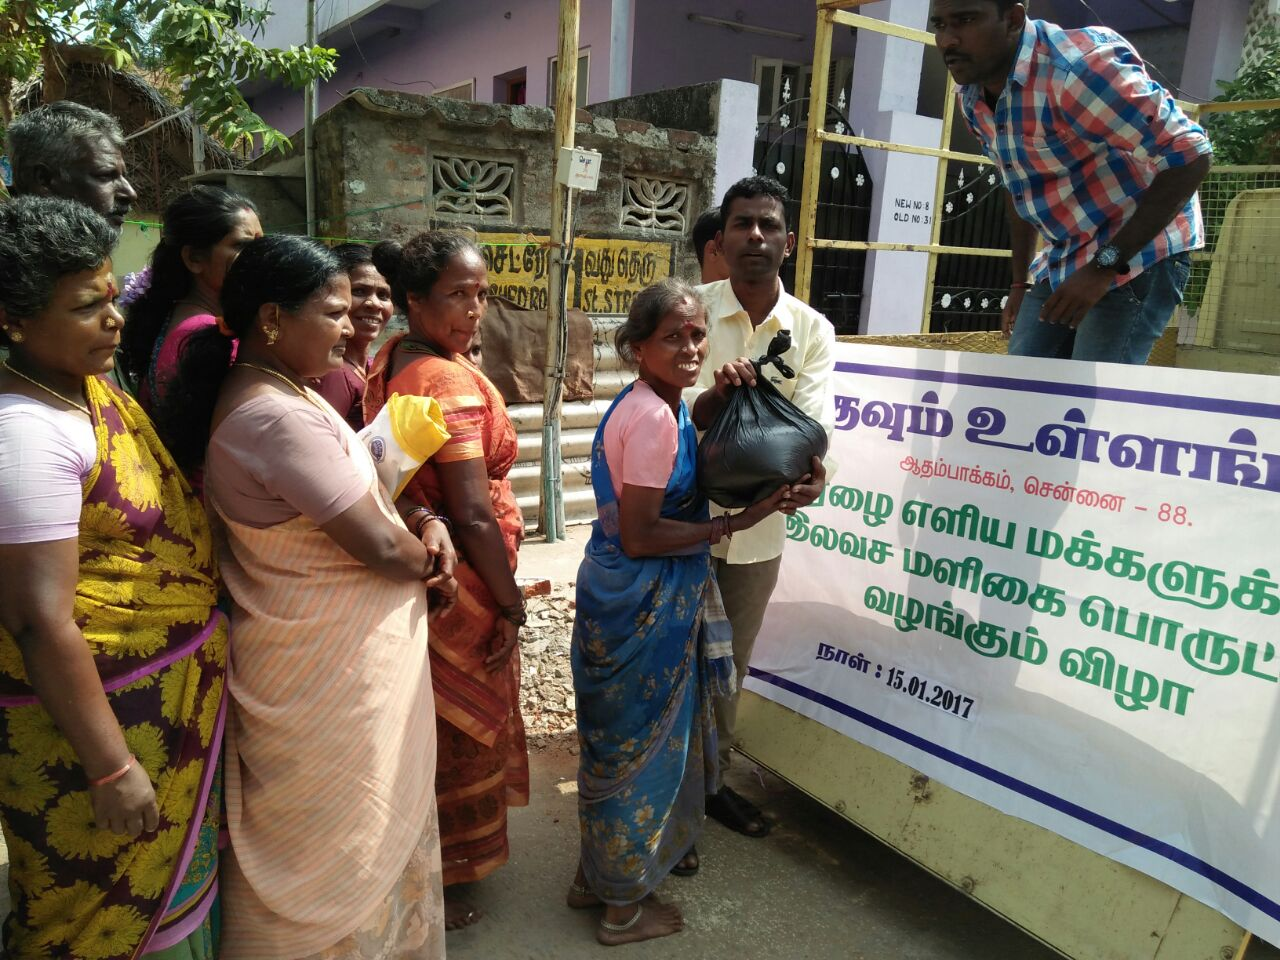 Donation of provisions offered to roadside dwellers at MRTS Velachery